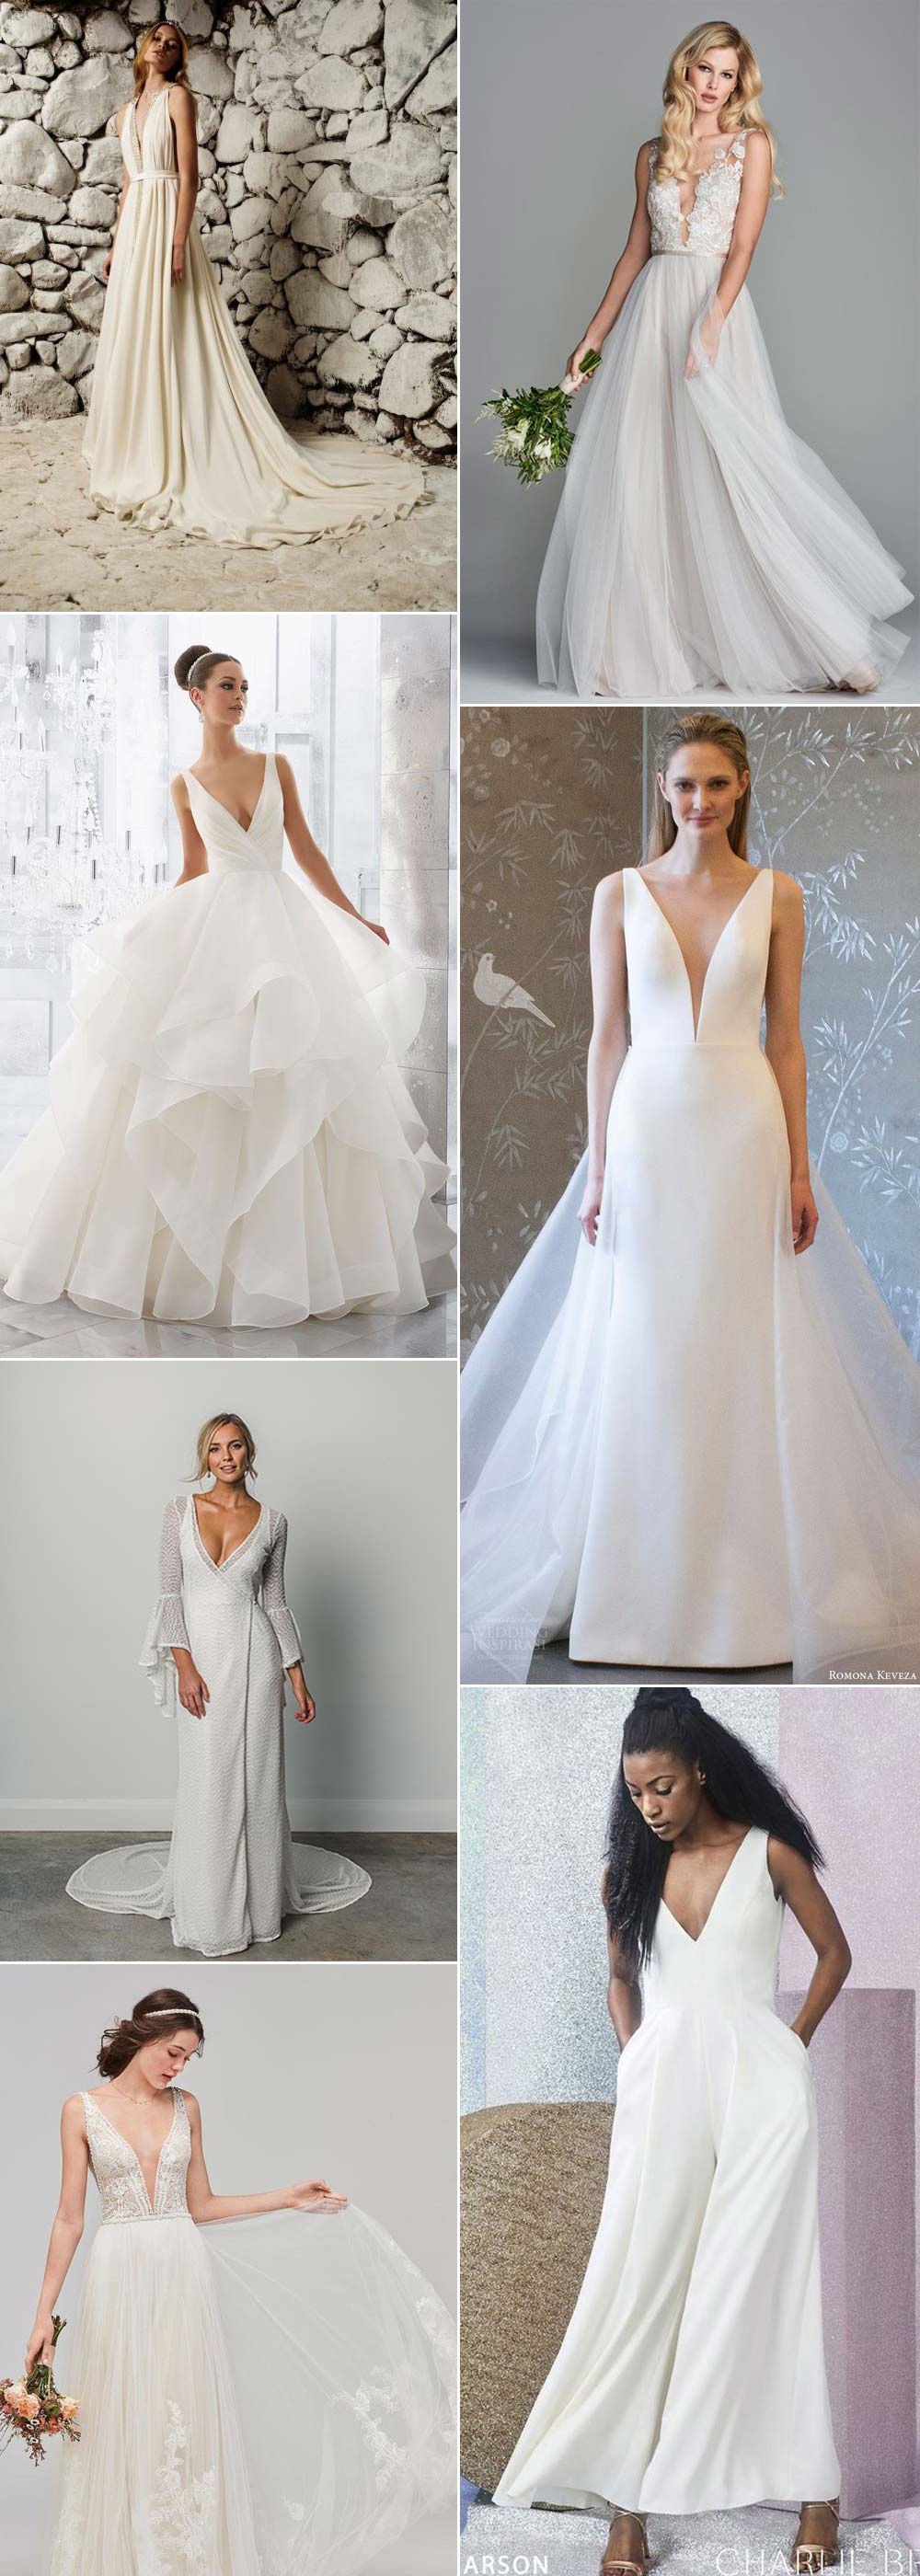 Deep V fronted wedding dresses